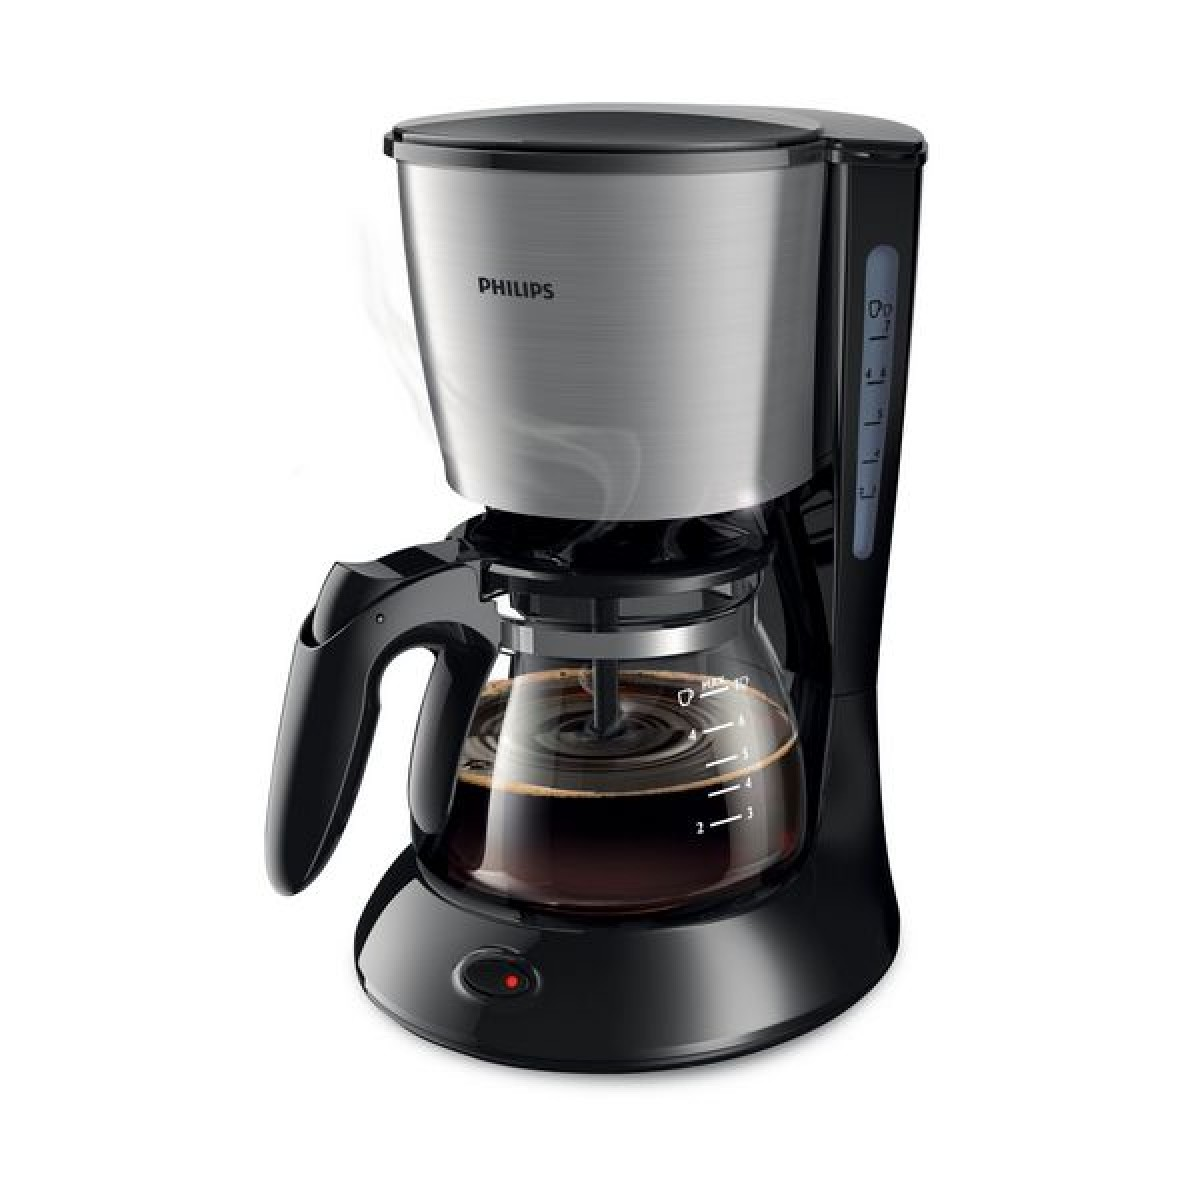 Elektrisk kaffemaskine Philips HD7435/20 700 W Sort